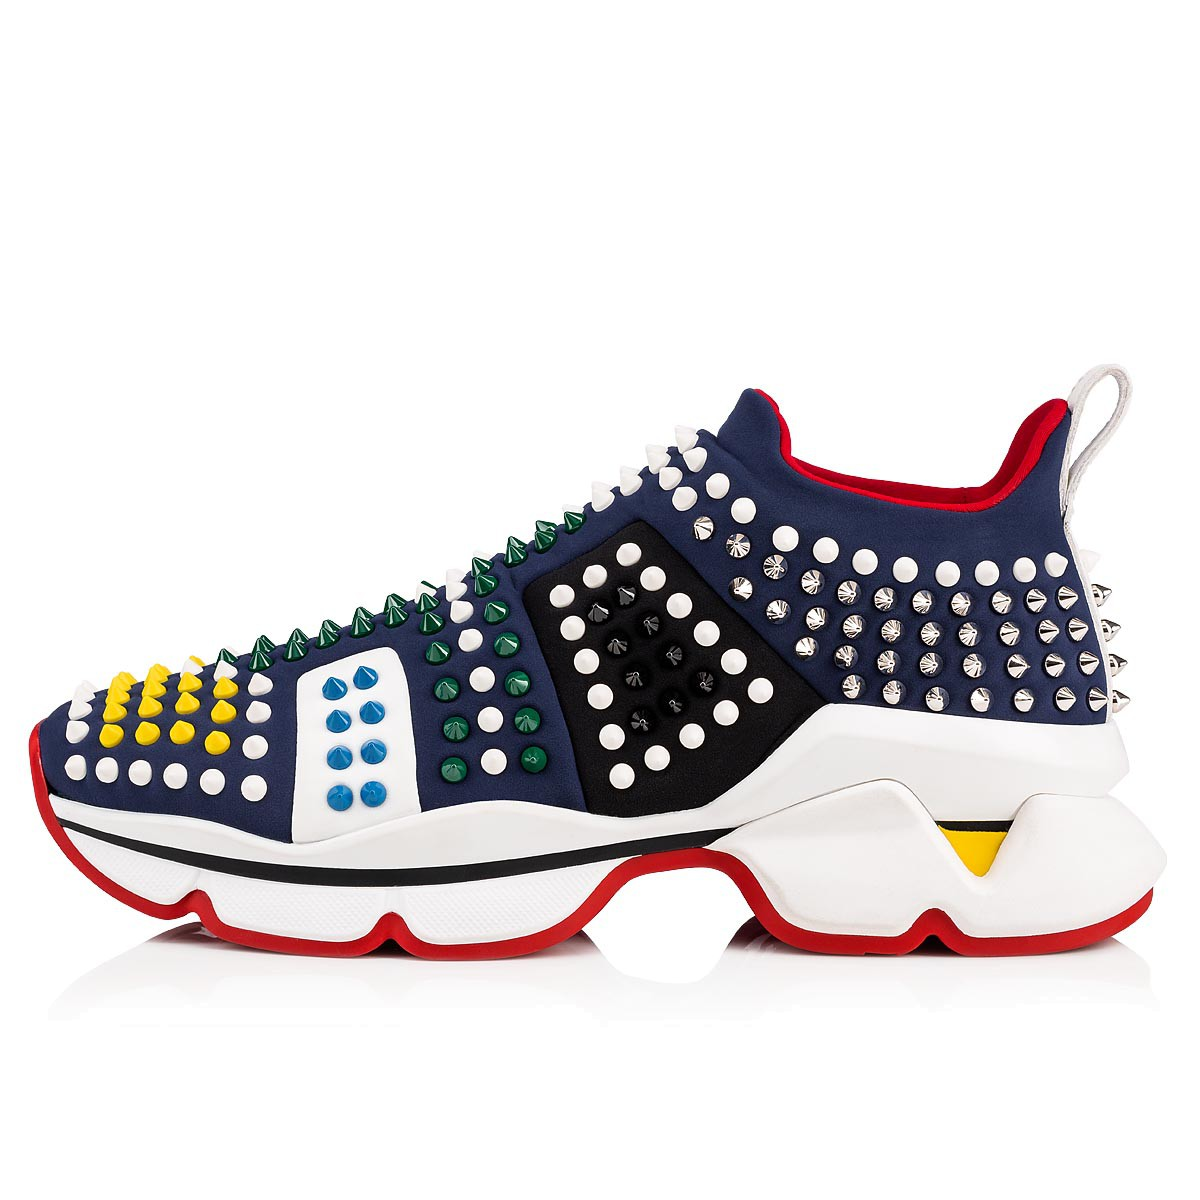 メンズシューズ - Funfor-run Men's Flat - Christian Louboutin